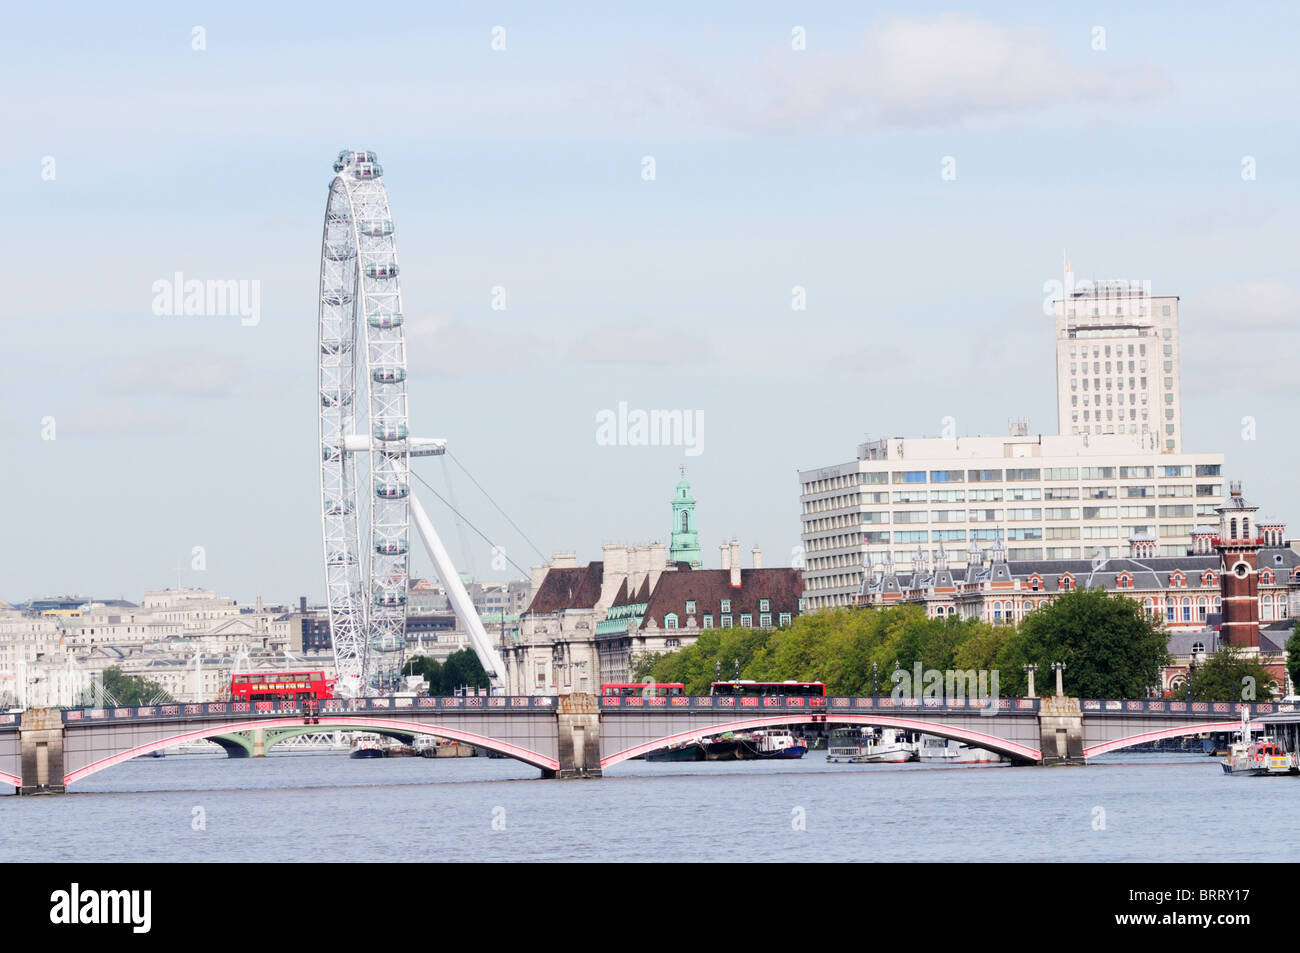 Lambeth Bridge with The London Eye and St Thomas' Hospital, view from Vauxhall Bridge, London, England, UK - Stock Image